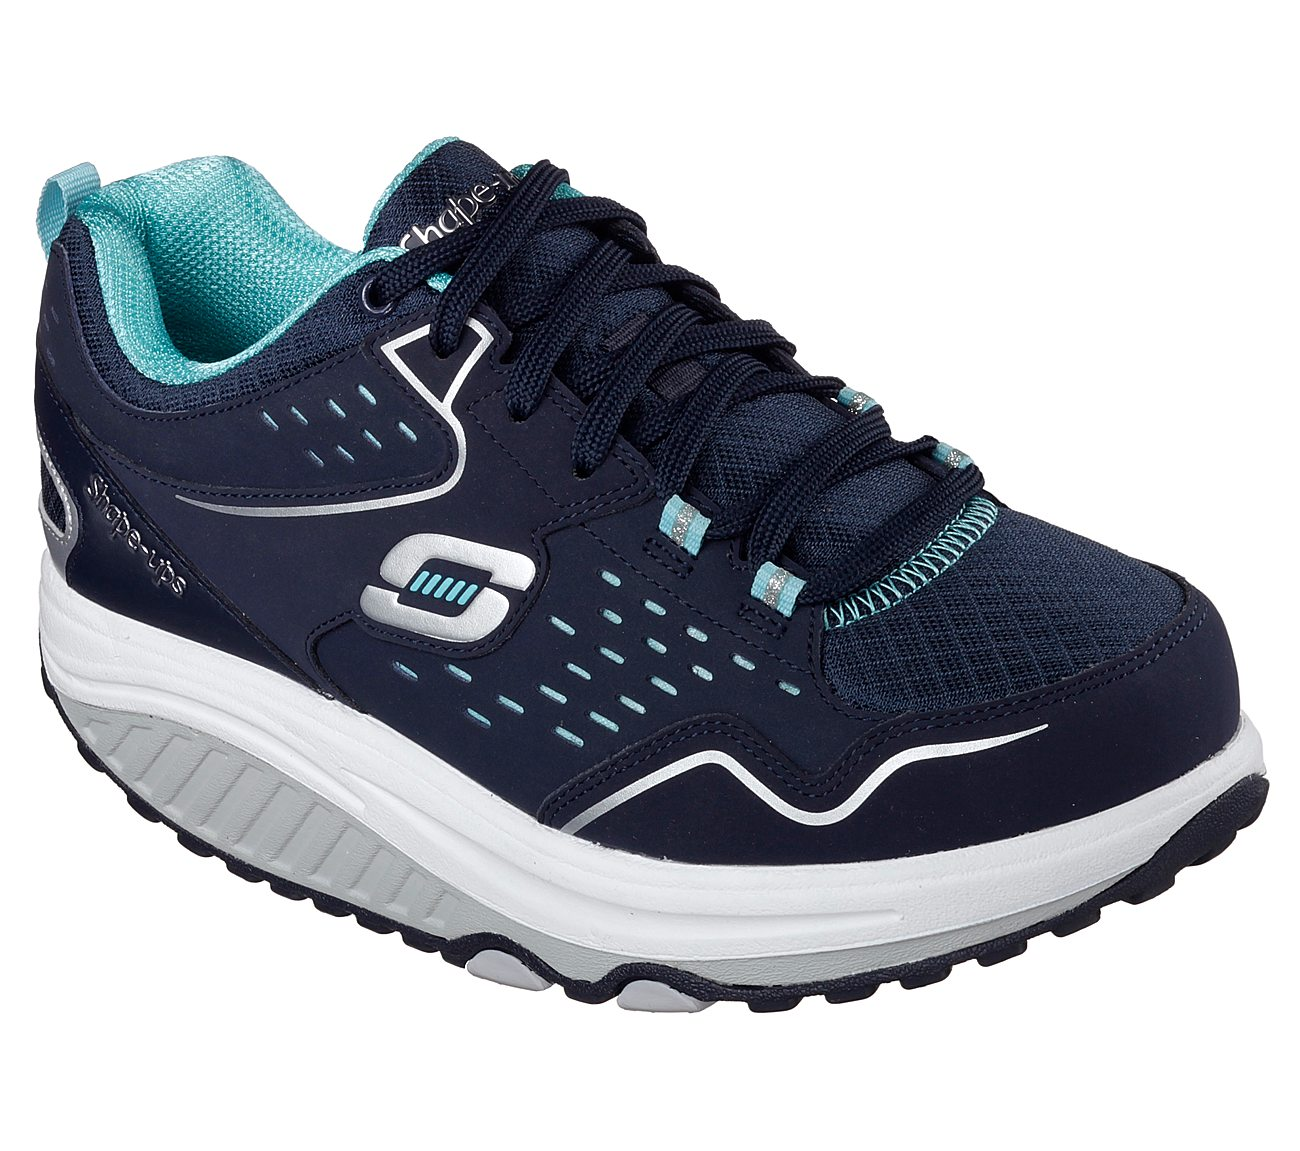 2 Shape Comfort Shoes Skechers Everyday Buy 0 Ups Walking ZBwtnOWUx